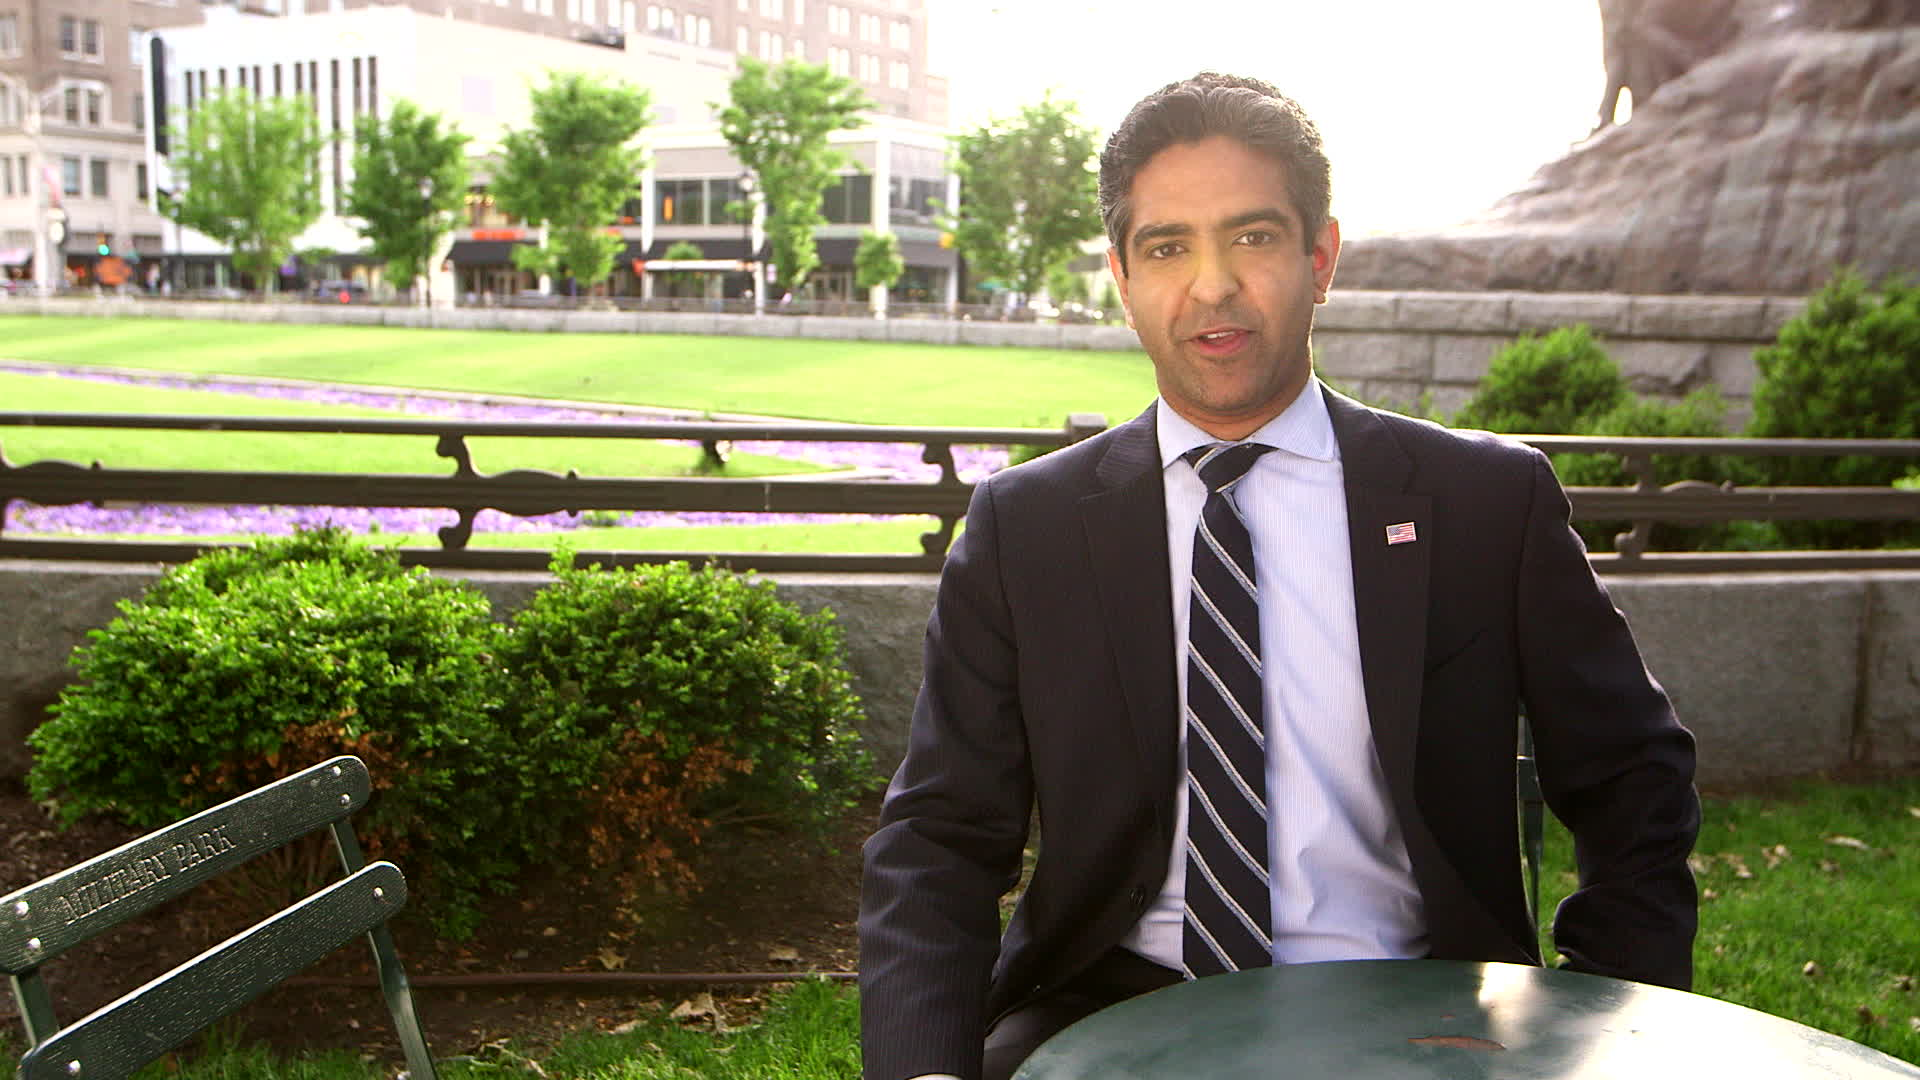 This is Hirsh Singh, speaking directly to you. I have one message: I am ONLY CONSERVATIVE running for governor, Democrats are pushing Socialist Banker Phil Murphy an Obama insider, who is trying to buy the governorship and raise our taxes.  I'm and Engineer, not a Politician. No one who has been in government can stop Murphy. I can, and I will. We can't afford the Murphy Threat in New Jersey. I'm Hirsh Singh, Engineer for Governor.